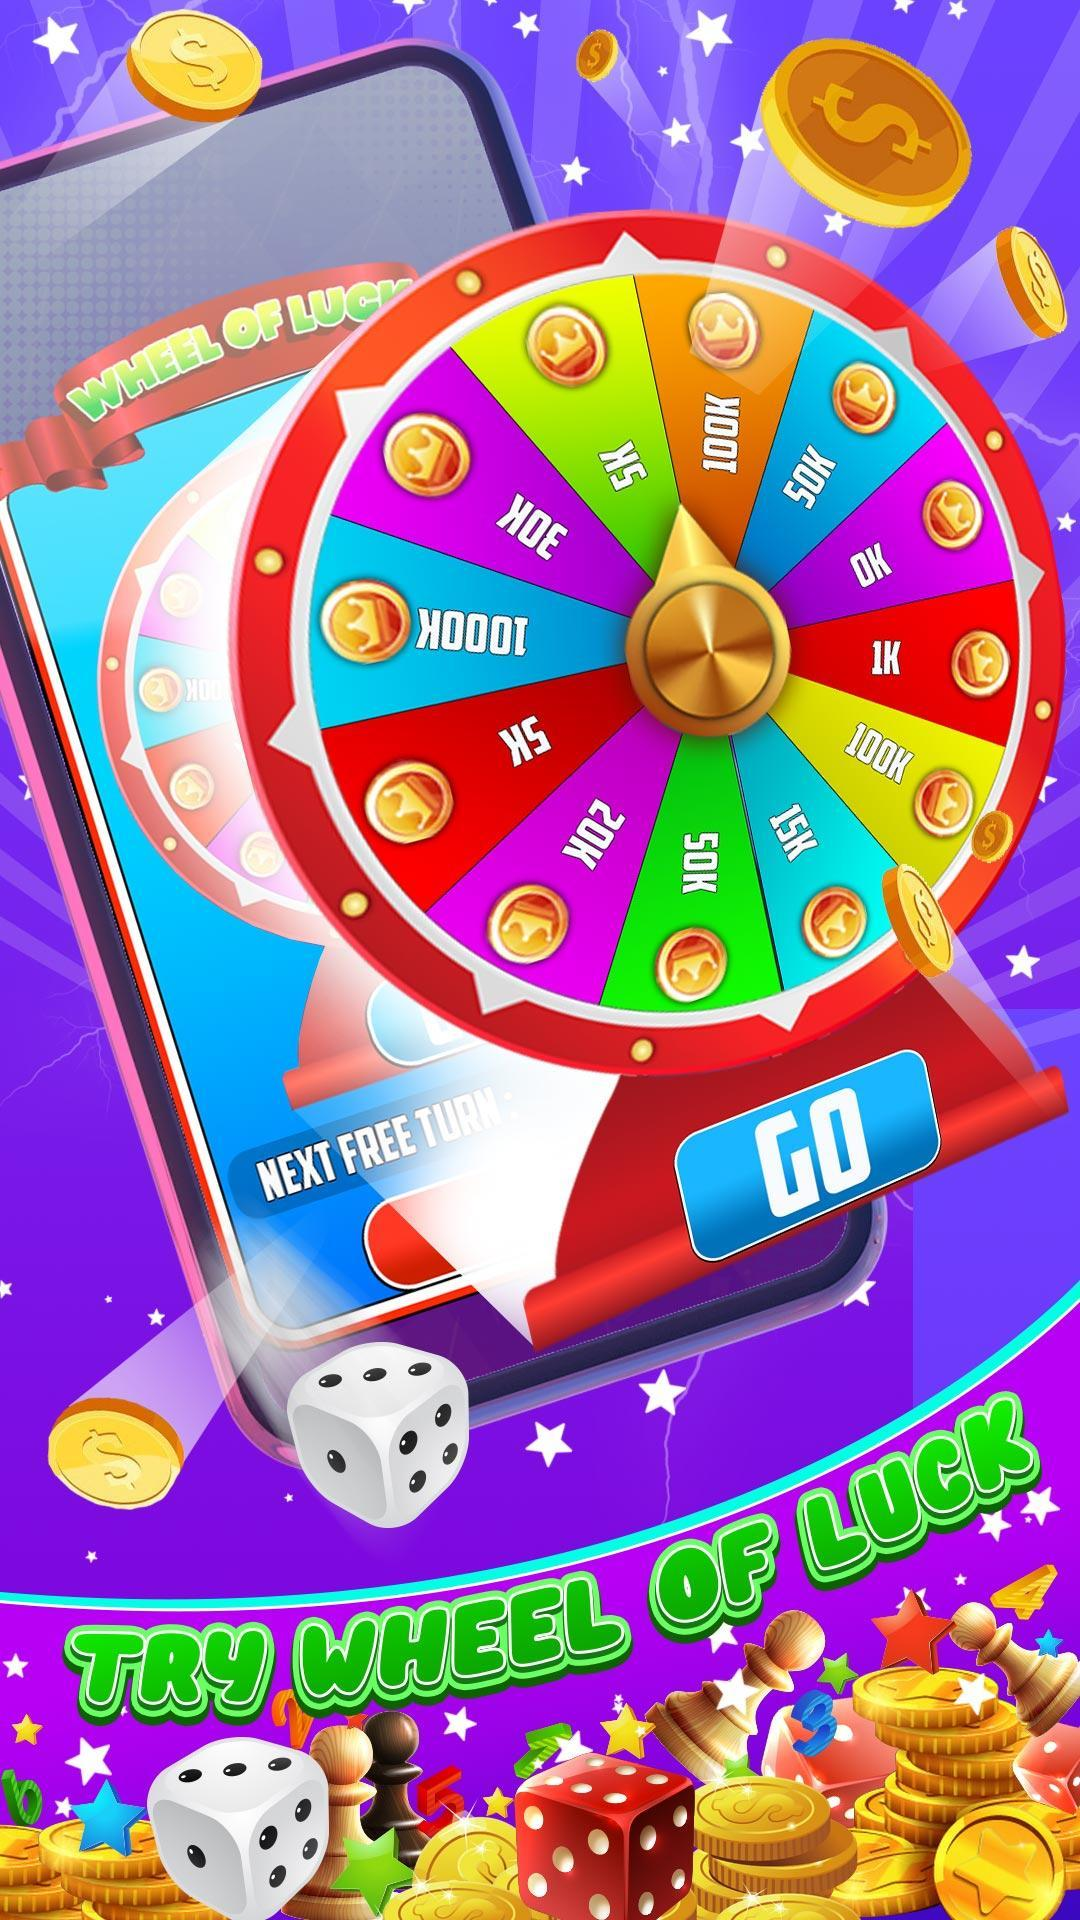 King of Ludo Dice Game with Free Voice Chat 2020 1.5.2 Screenshot 5